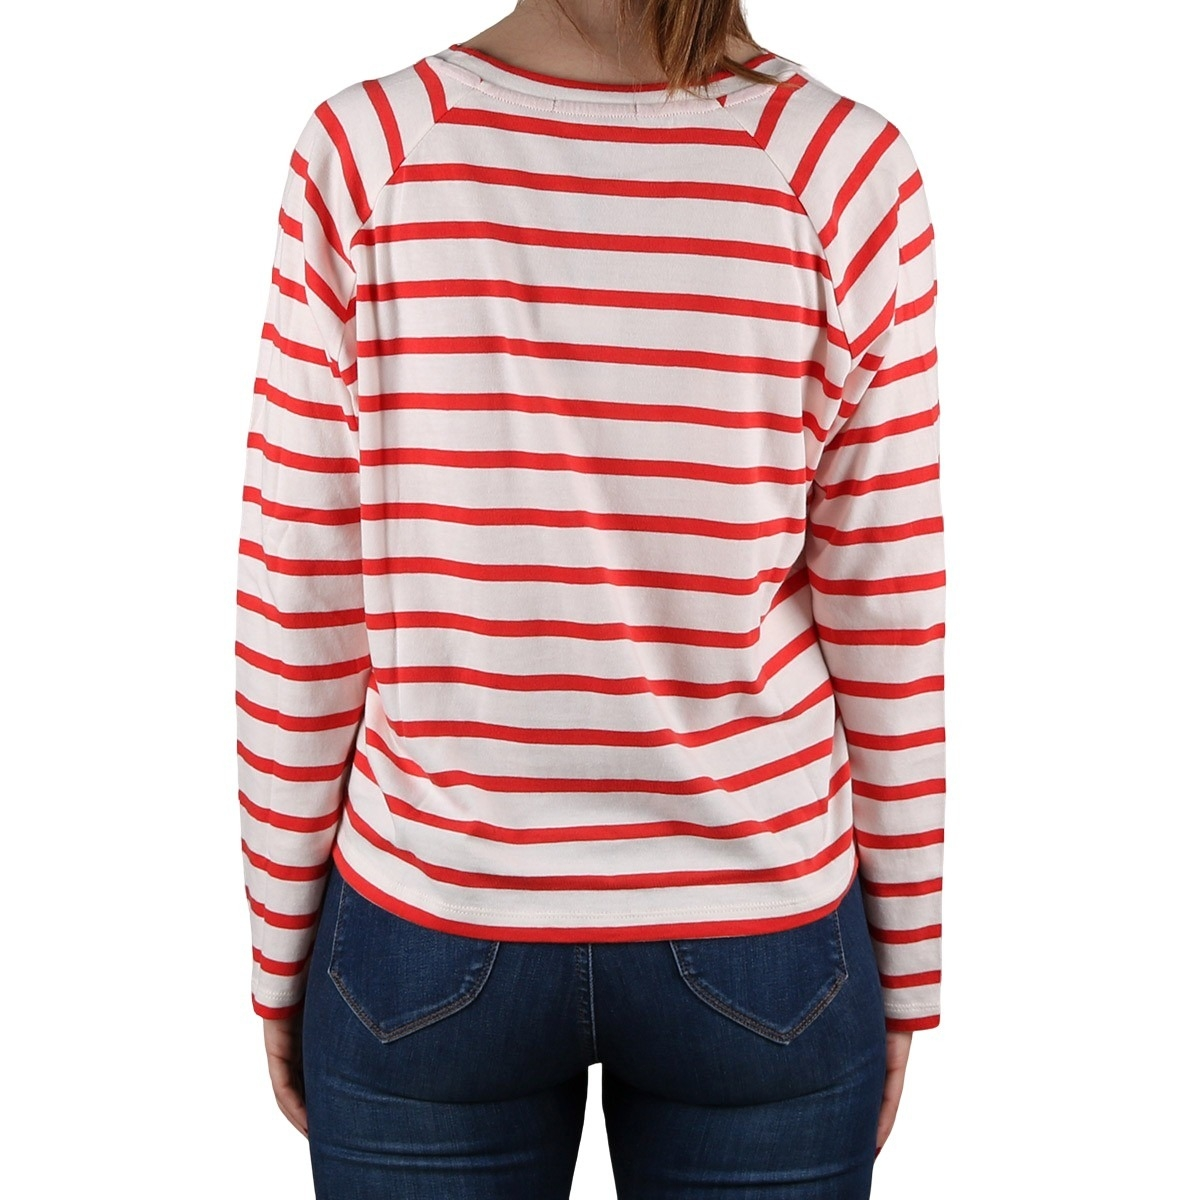 Pepe Jeans Camiseta Evelyn Strawberry Rayas Rojo Mujer